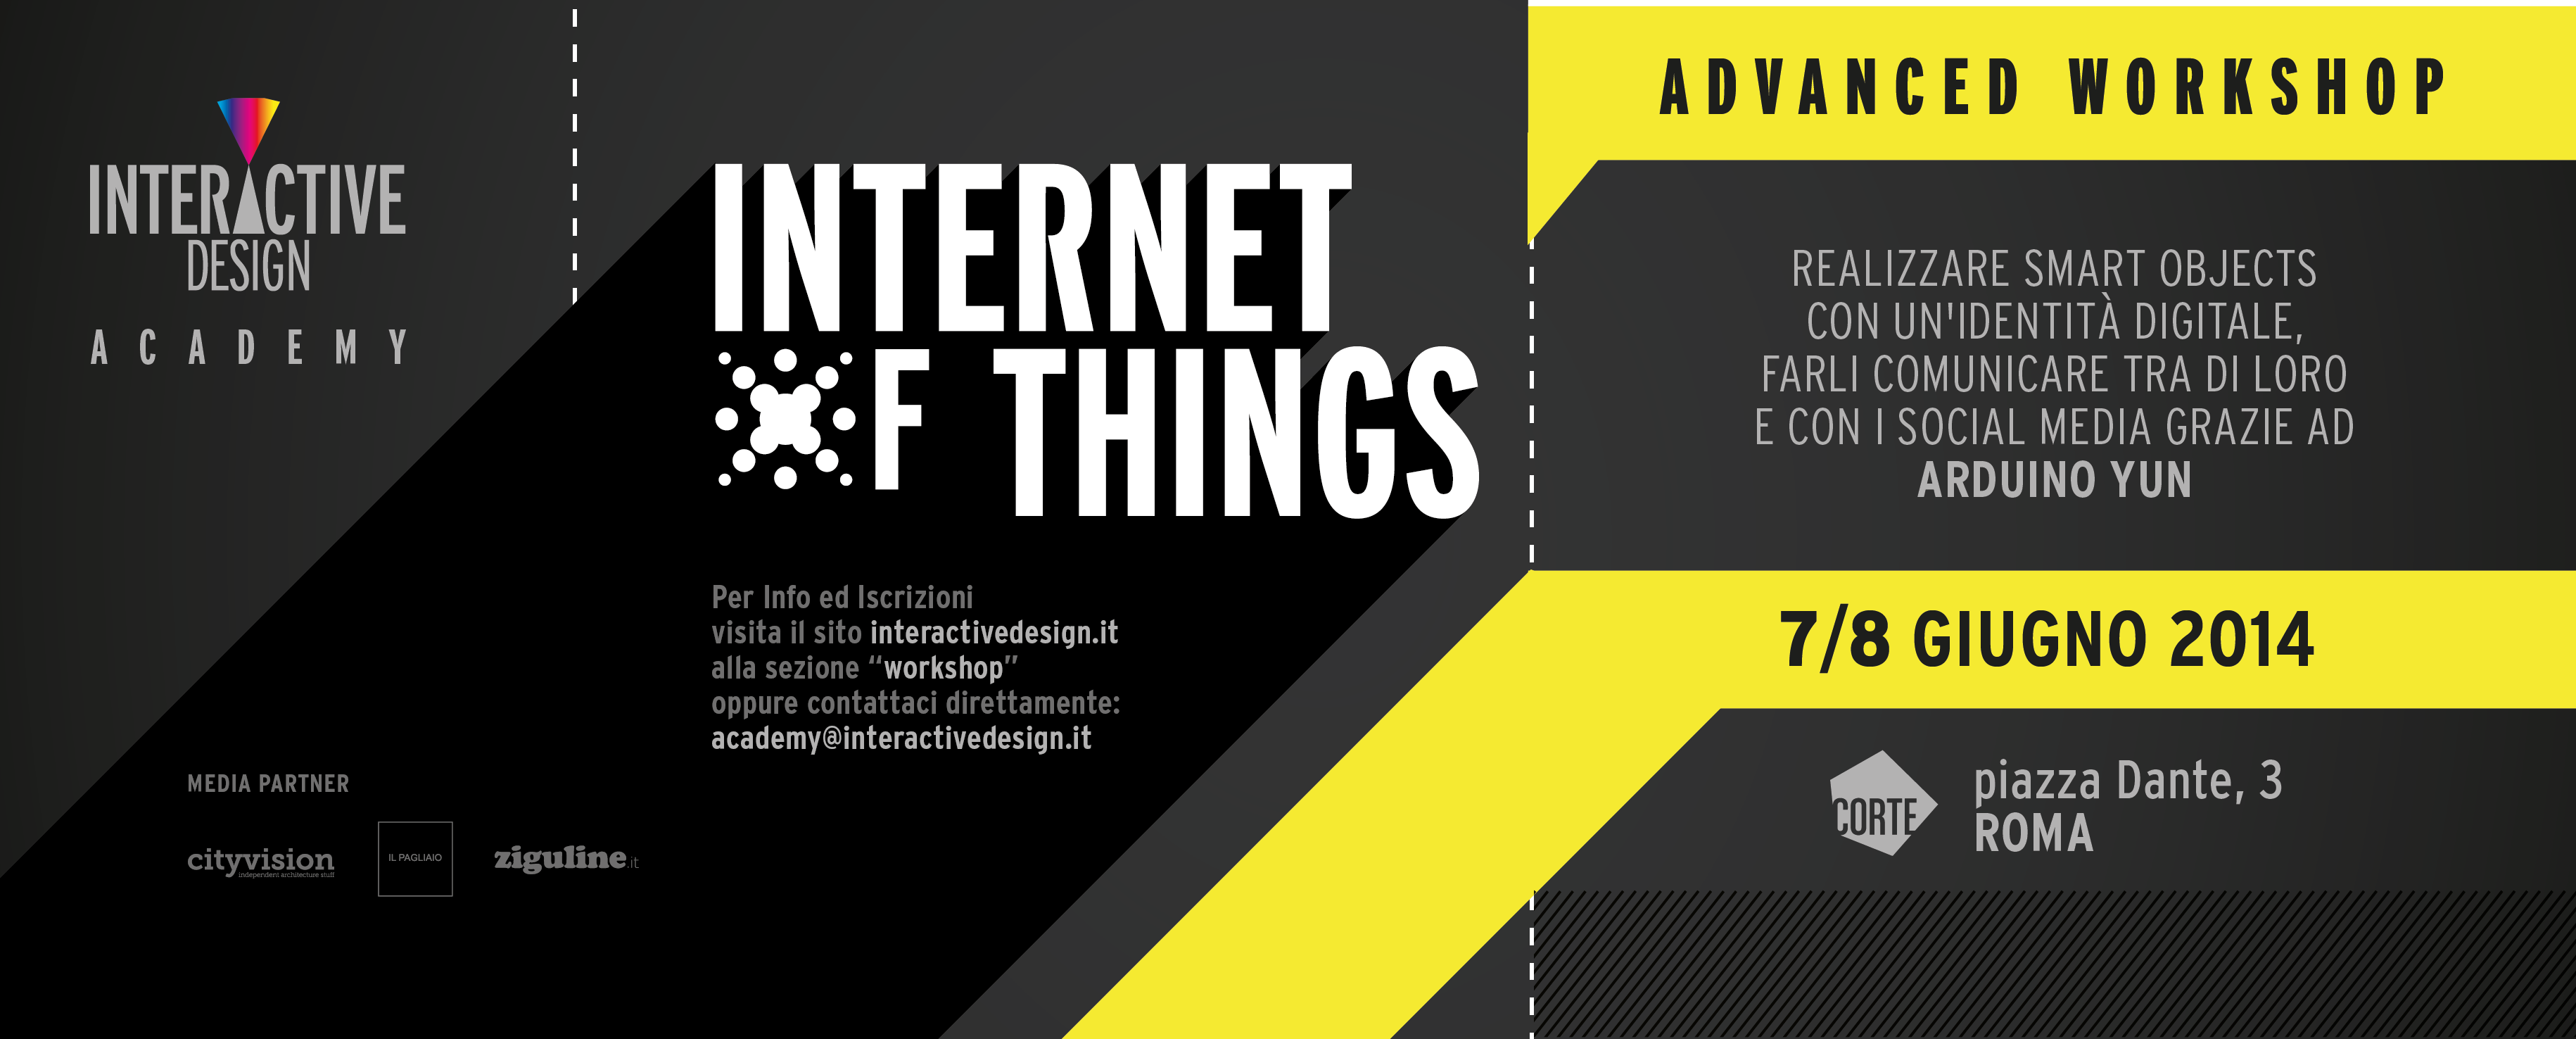 INTERNET OF THINGS - Advanced Workshop